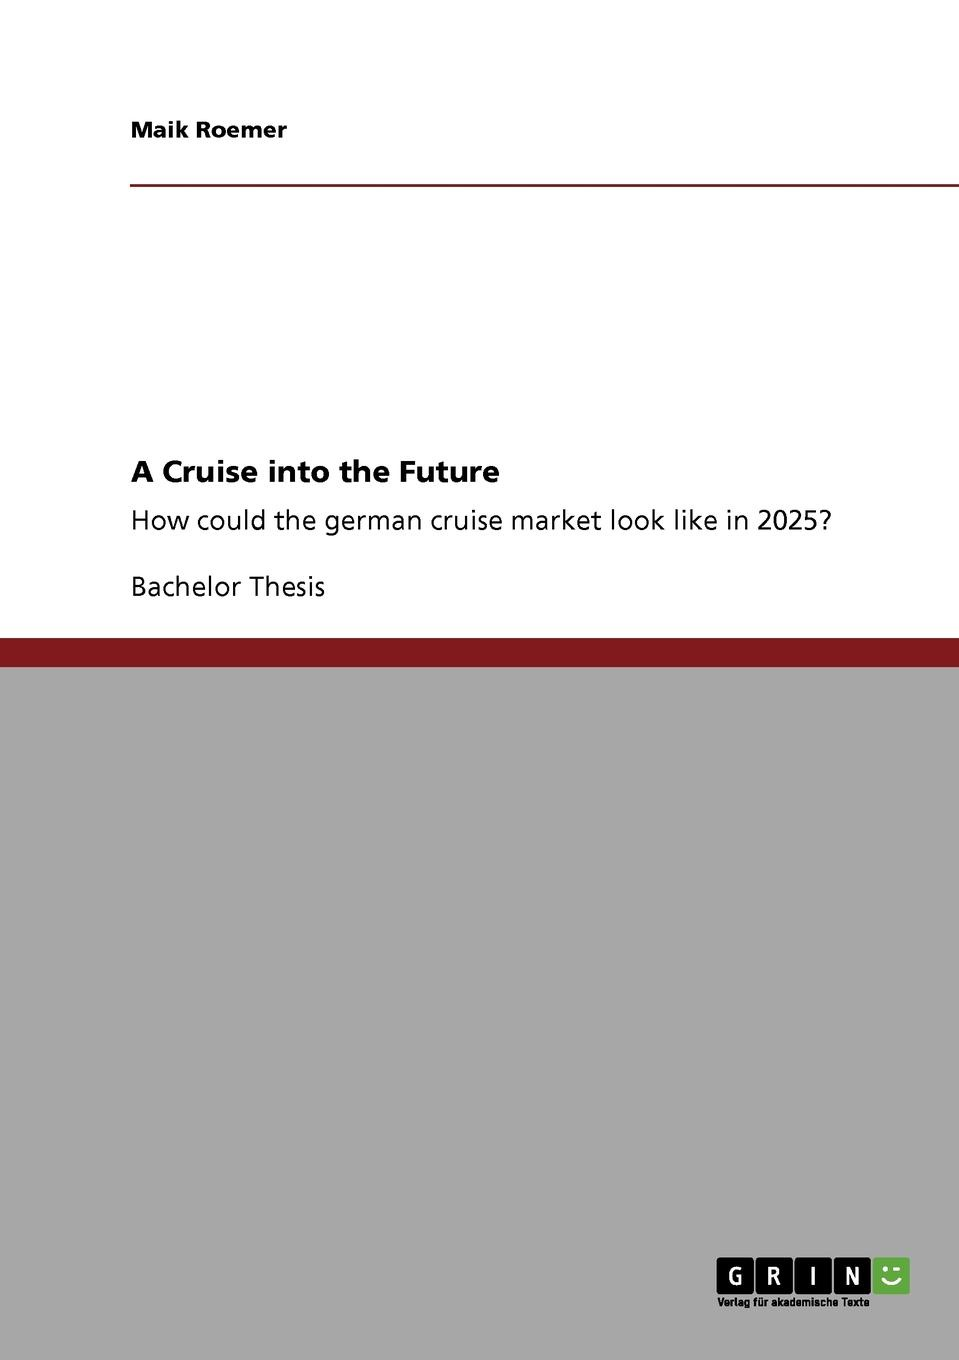 Maik Roemer A Cruise into the Future